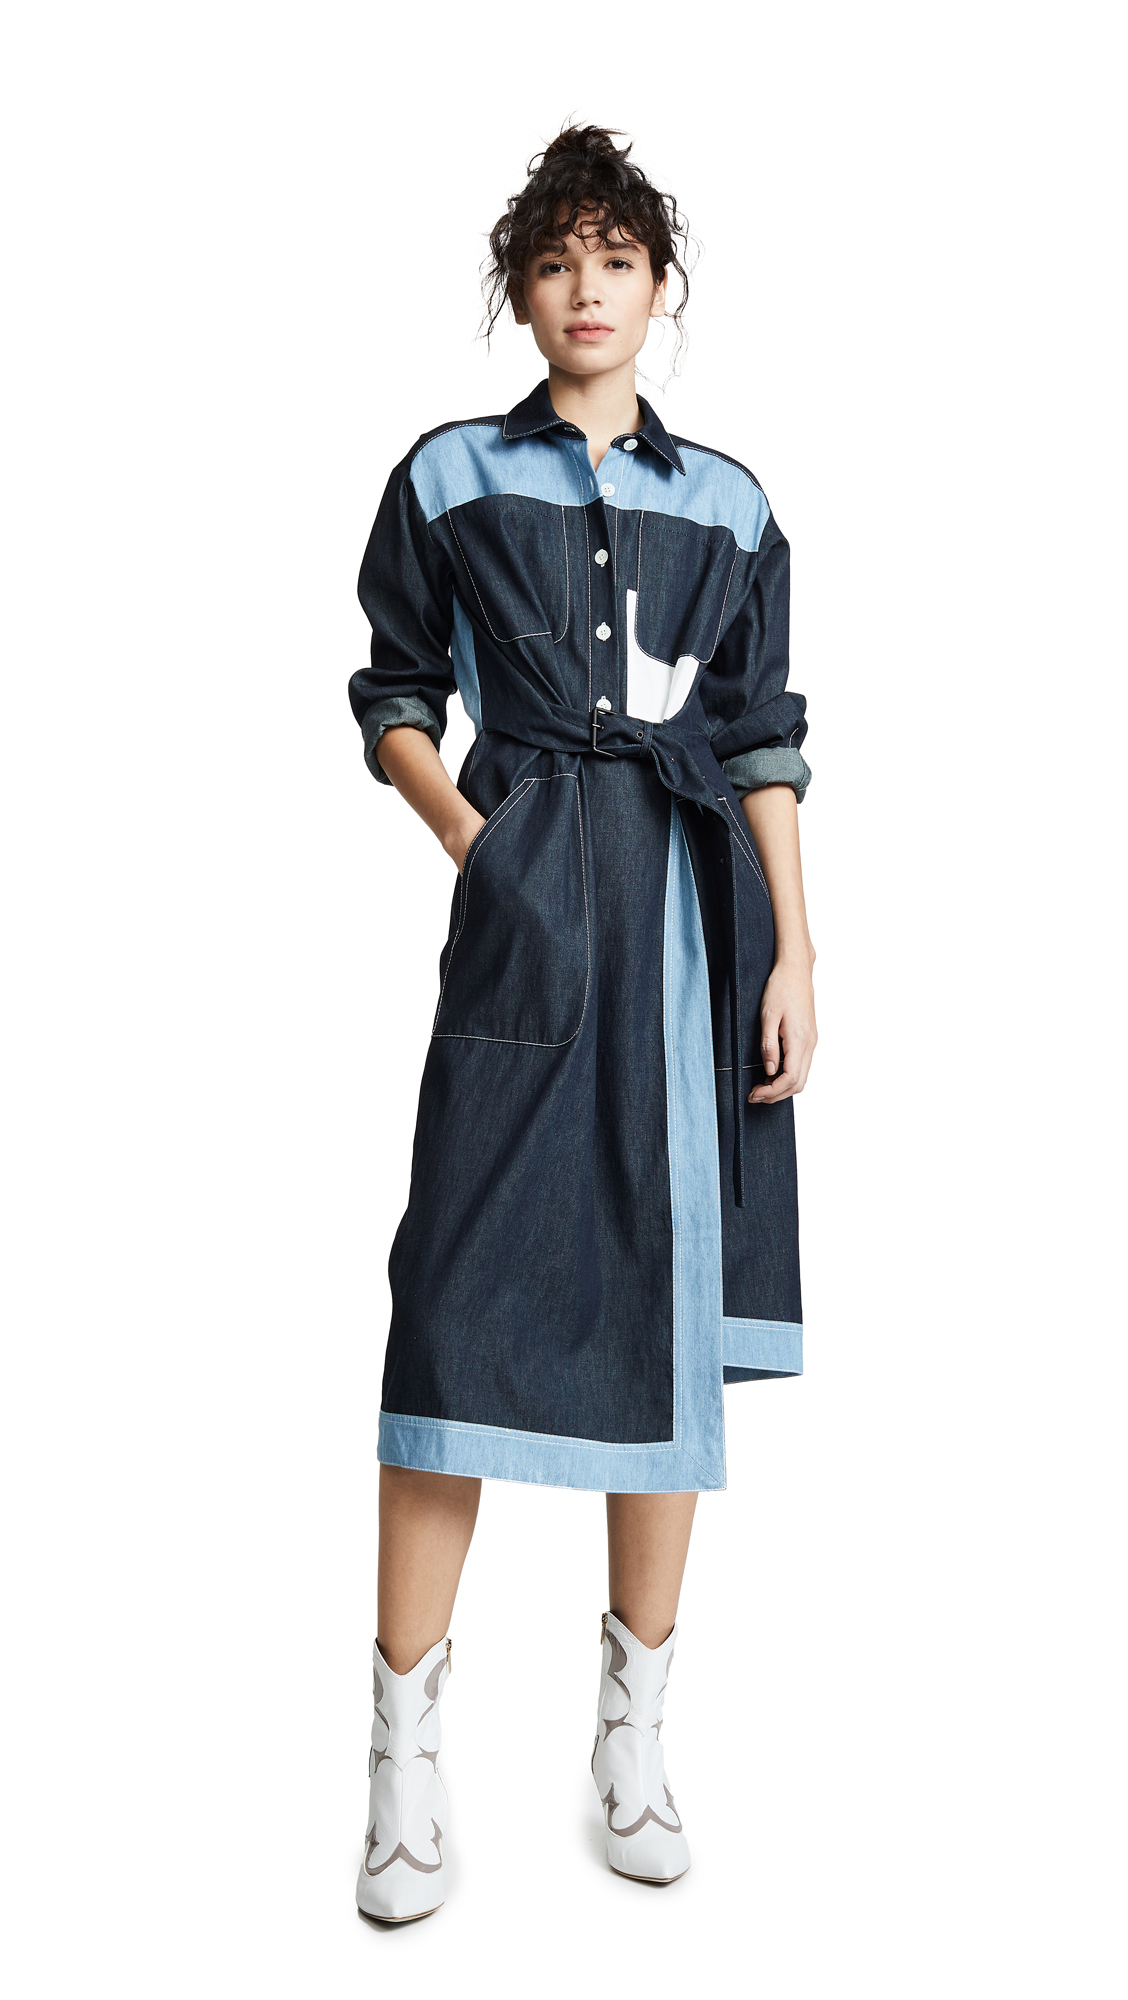 Colovos Belted Two Tone Shirtdress - Dark Blue/Light Blue